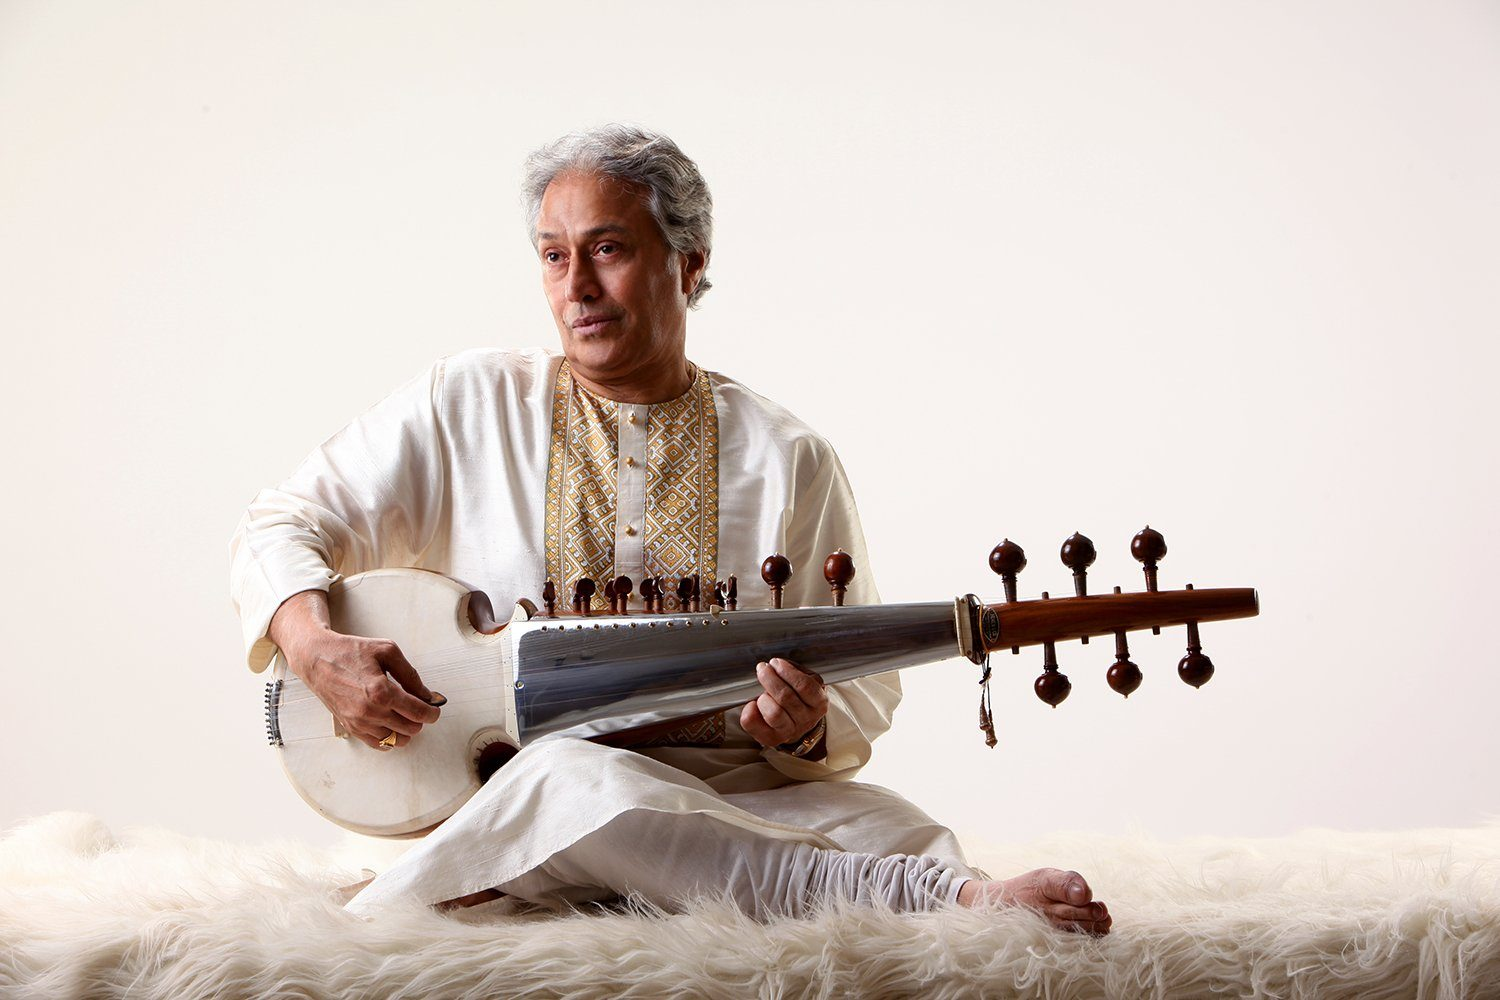 Musical event in Goa, Ustad Amjad Ali Khan, Kala Academy, Goa